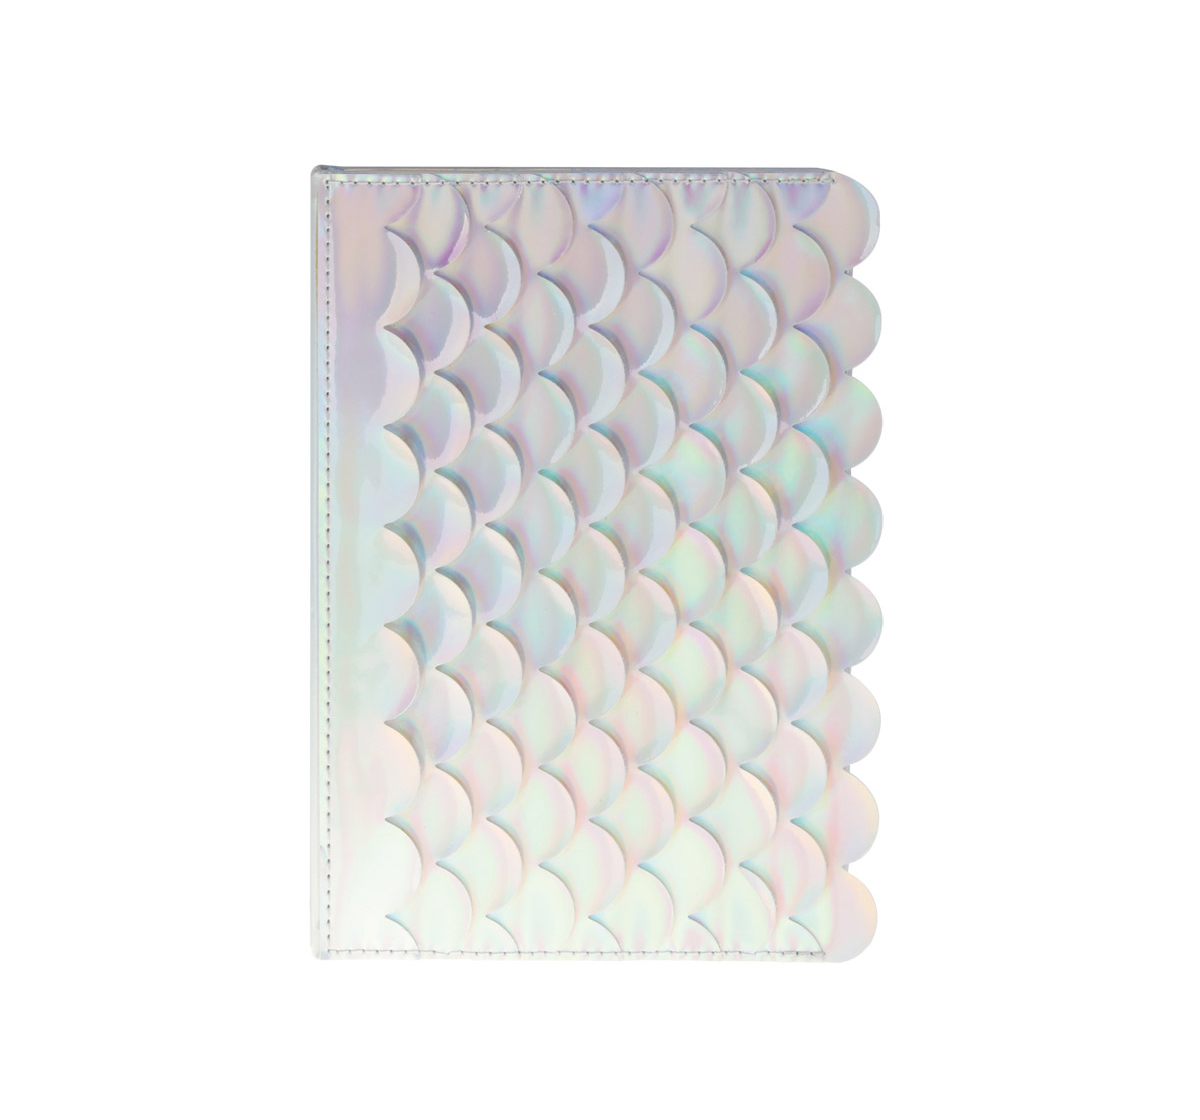 Syloon | Syloon Metallic - Mermaid White Holo Pu A5 Notebook Study & Desk Accessories for Kids age 5Y+ (White)